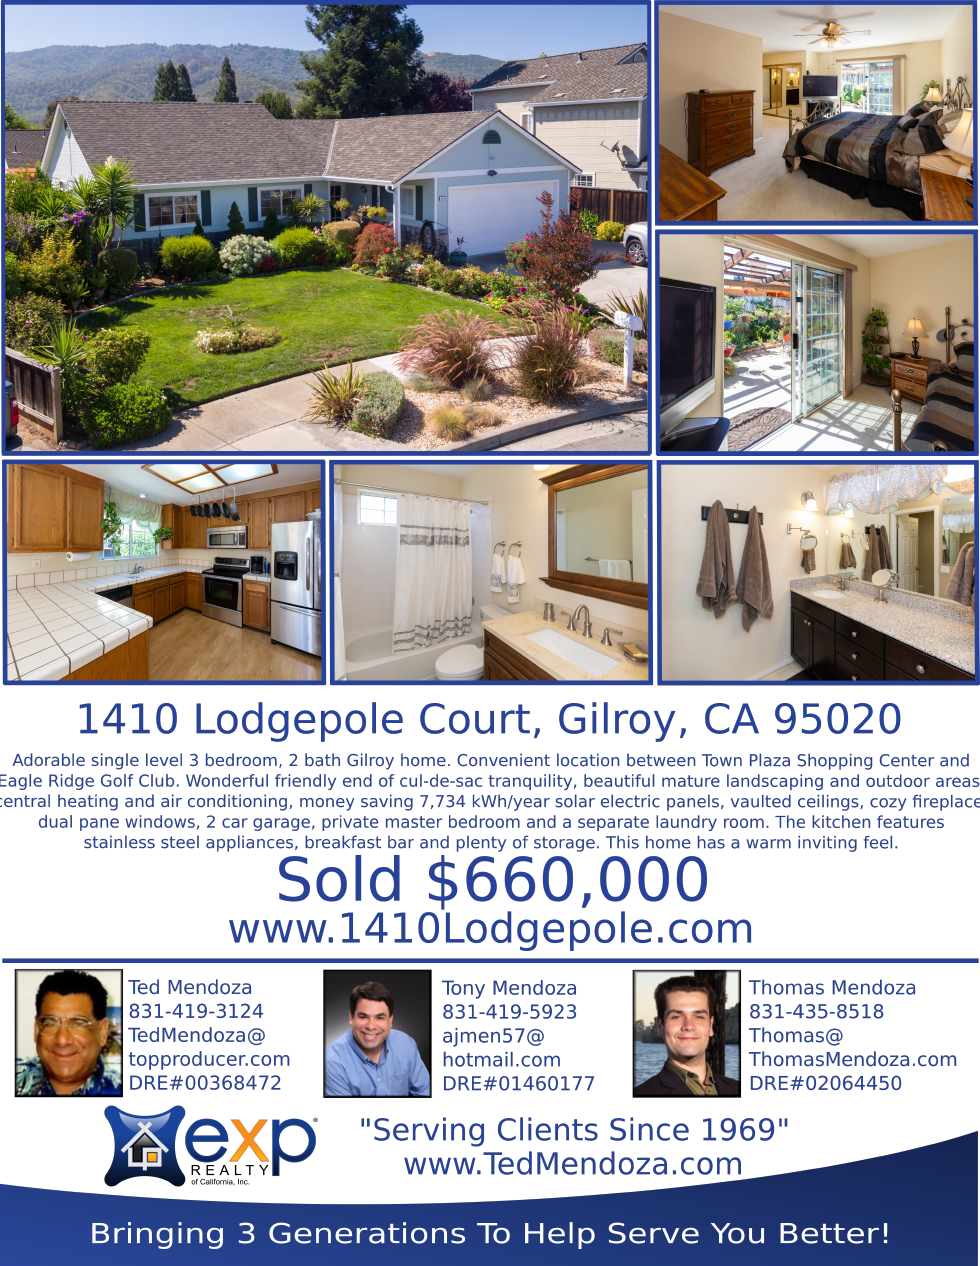 1410 Lodgepole Court, Gilroy, CA 95020